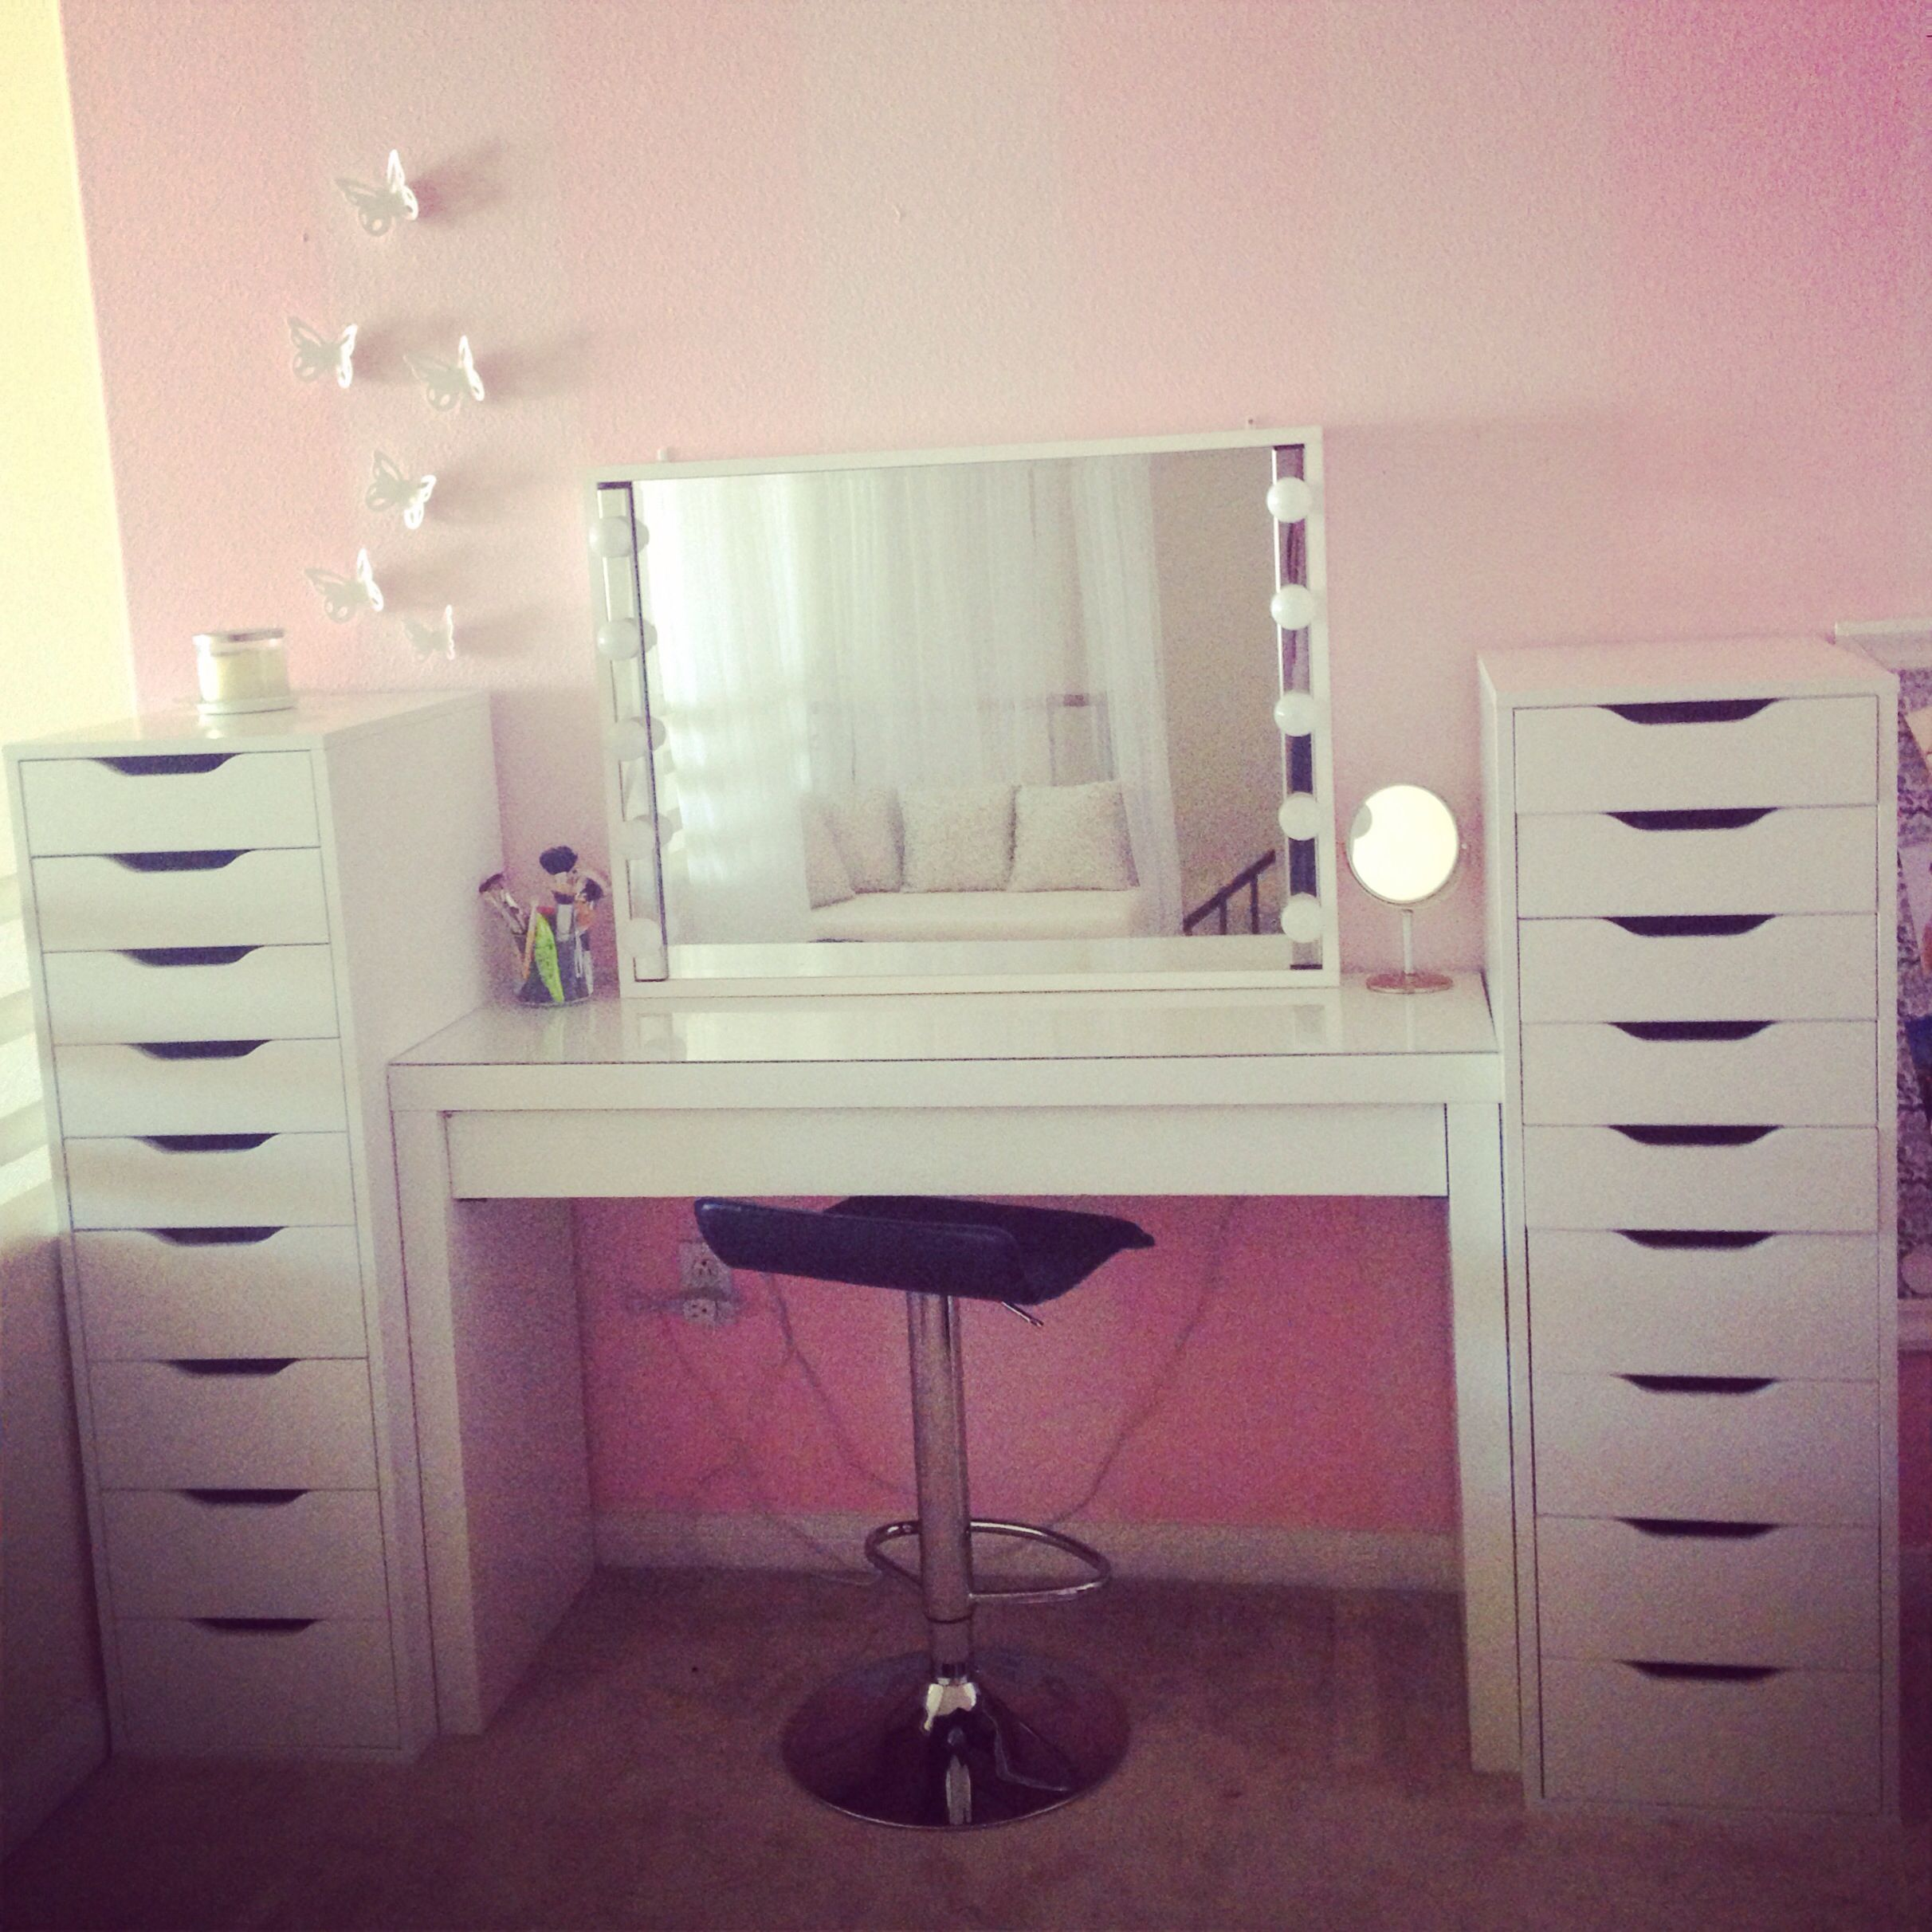 Love these new alex drawers to organize makeup and hair products